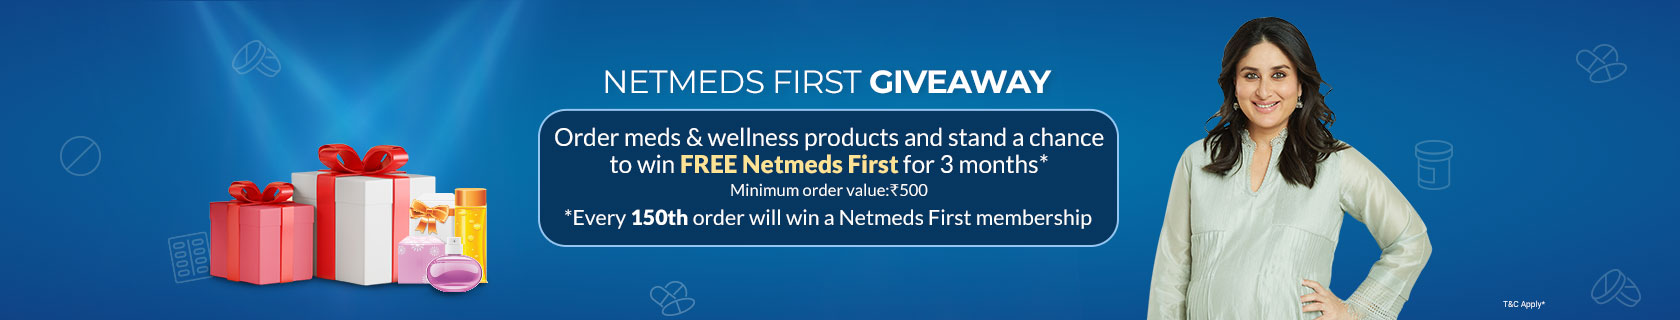 Chance to Win Netmeds First membership for FREE